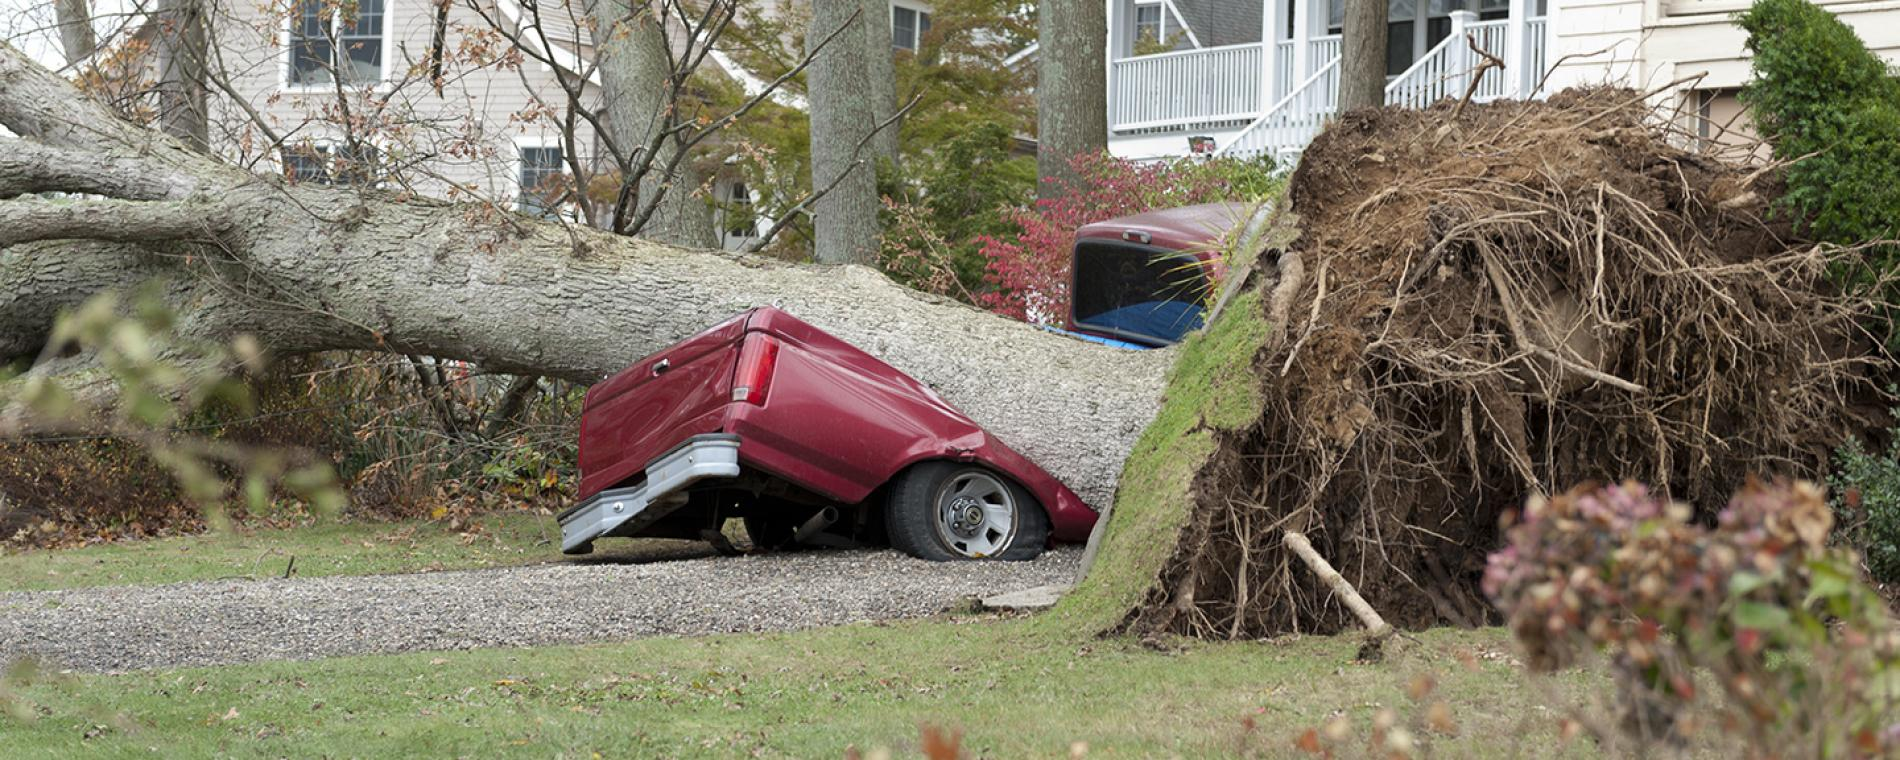 Car and truck insurance claim tree falls on car